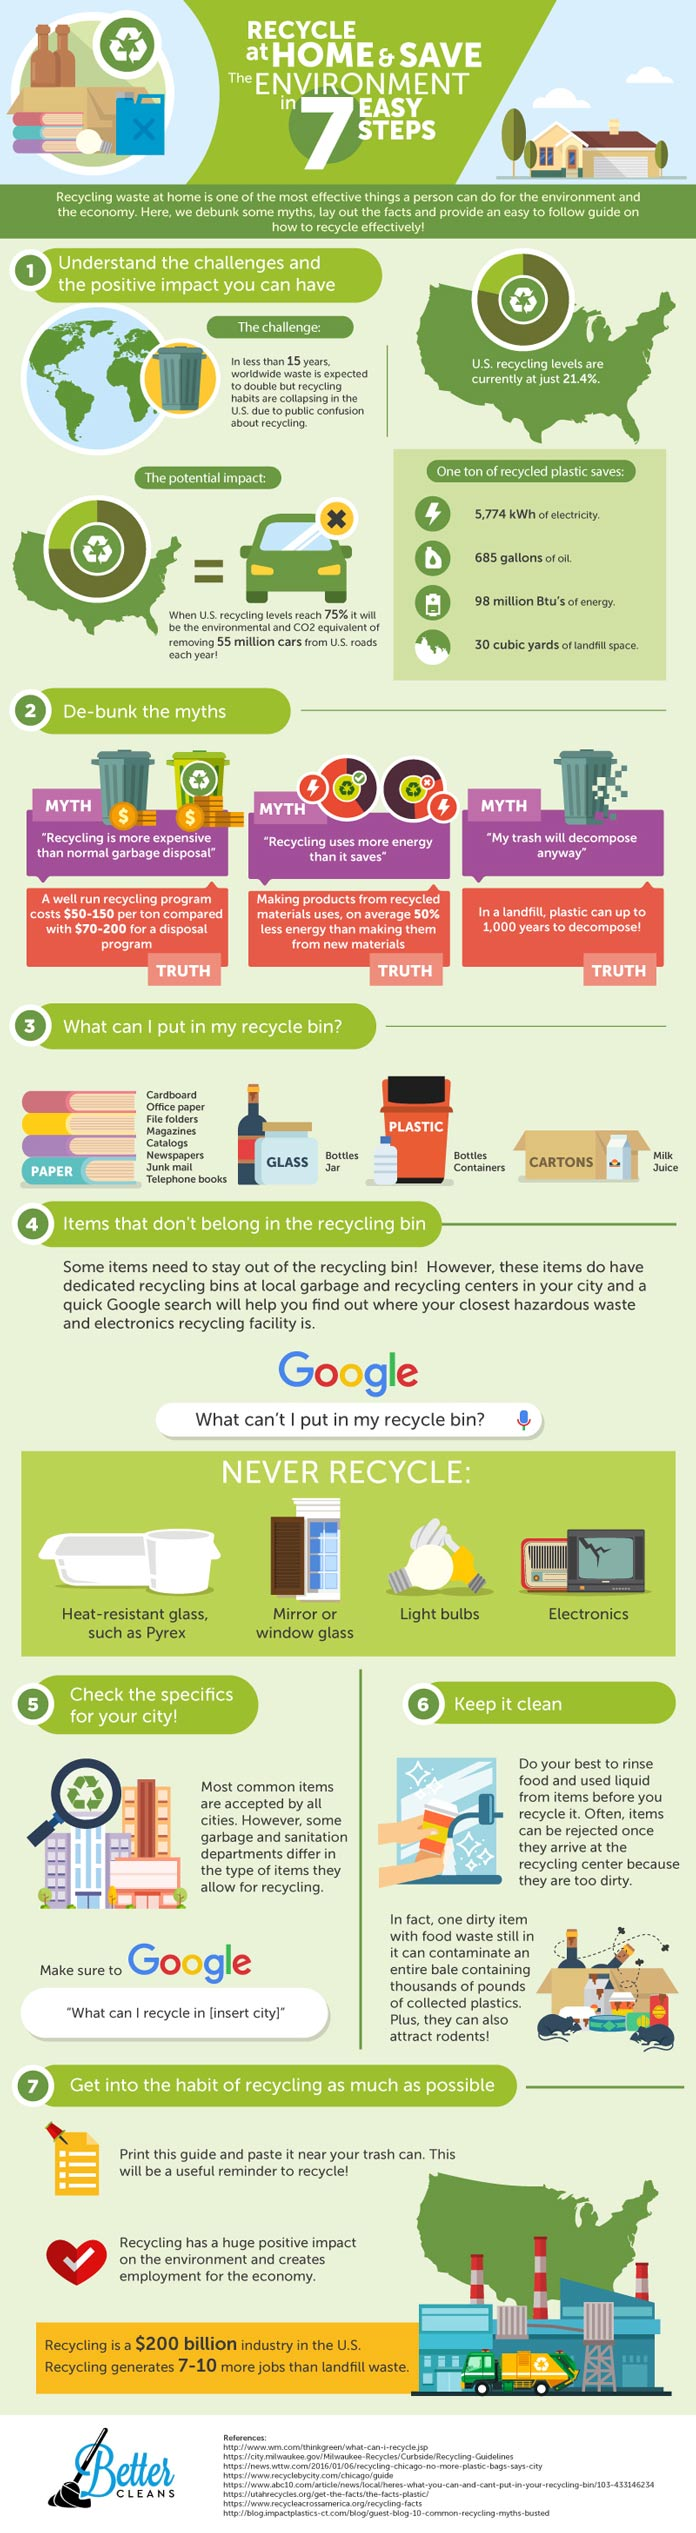 Recycling-infographic_BetterCleans